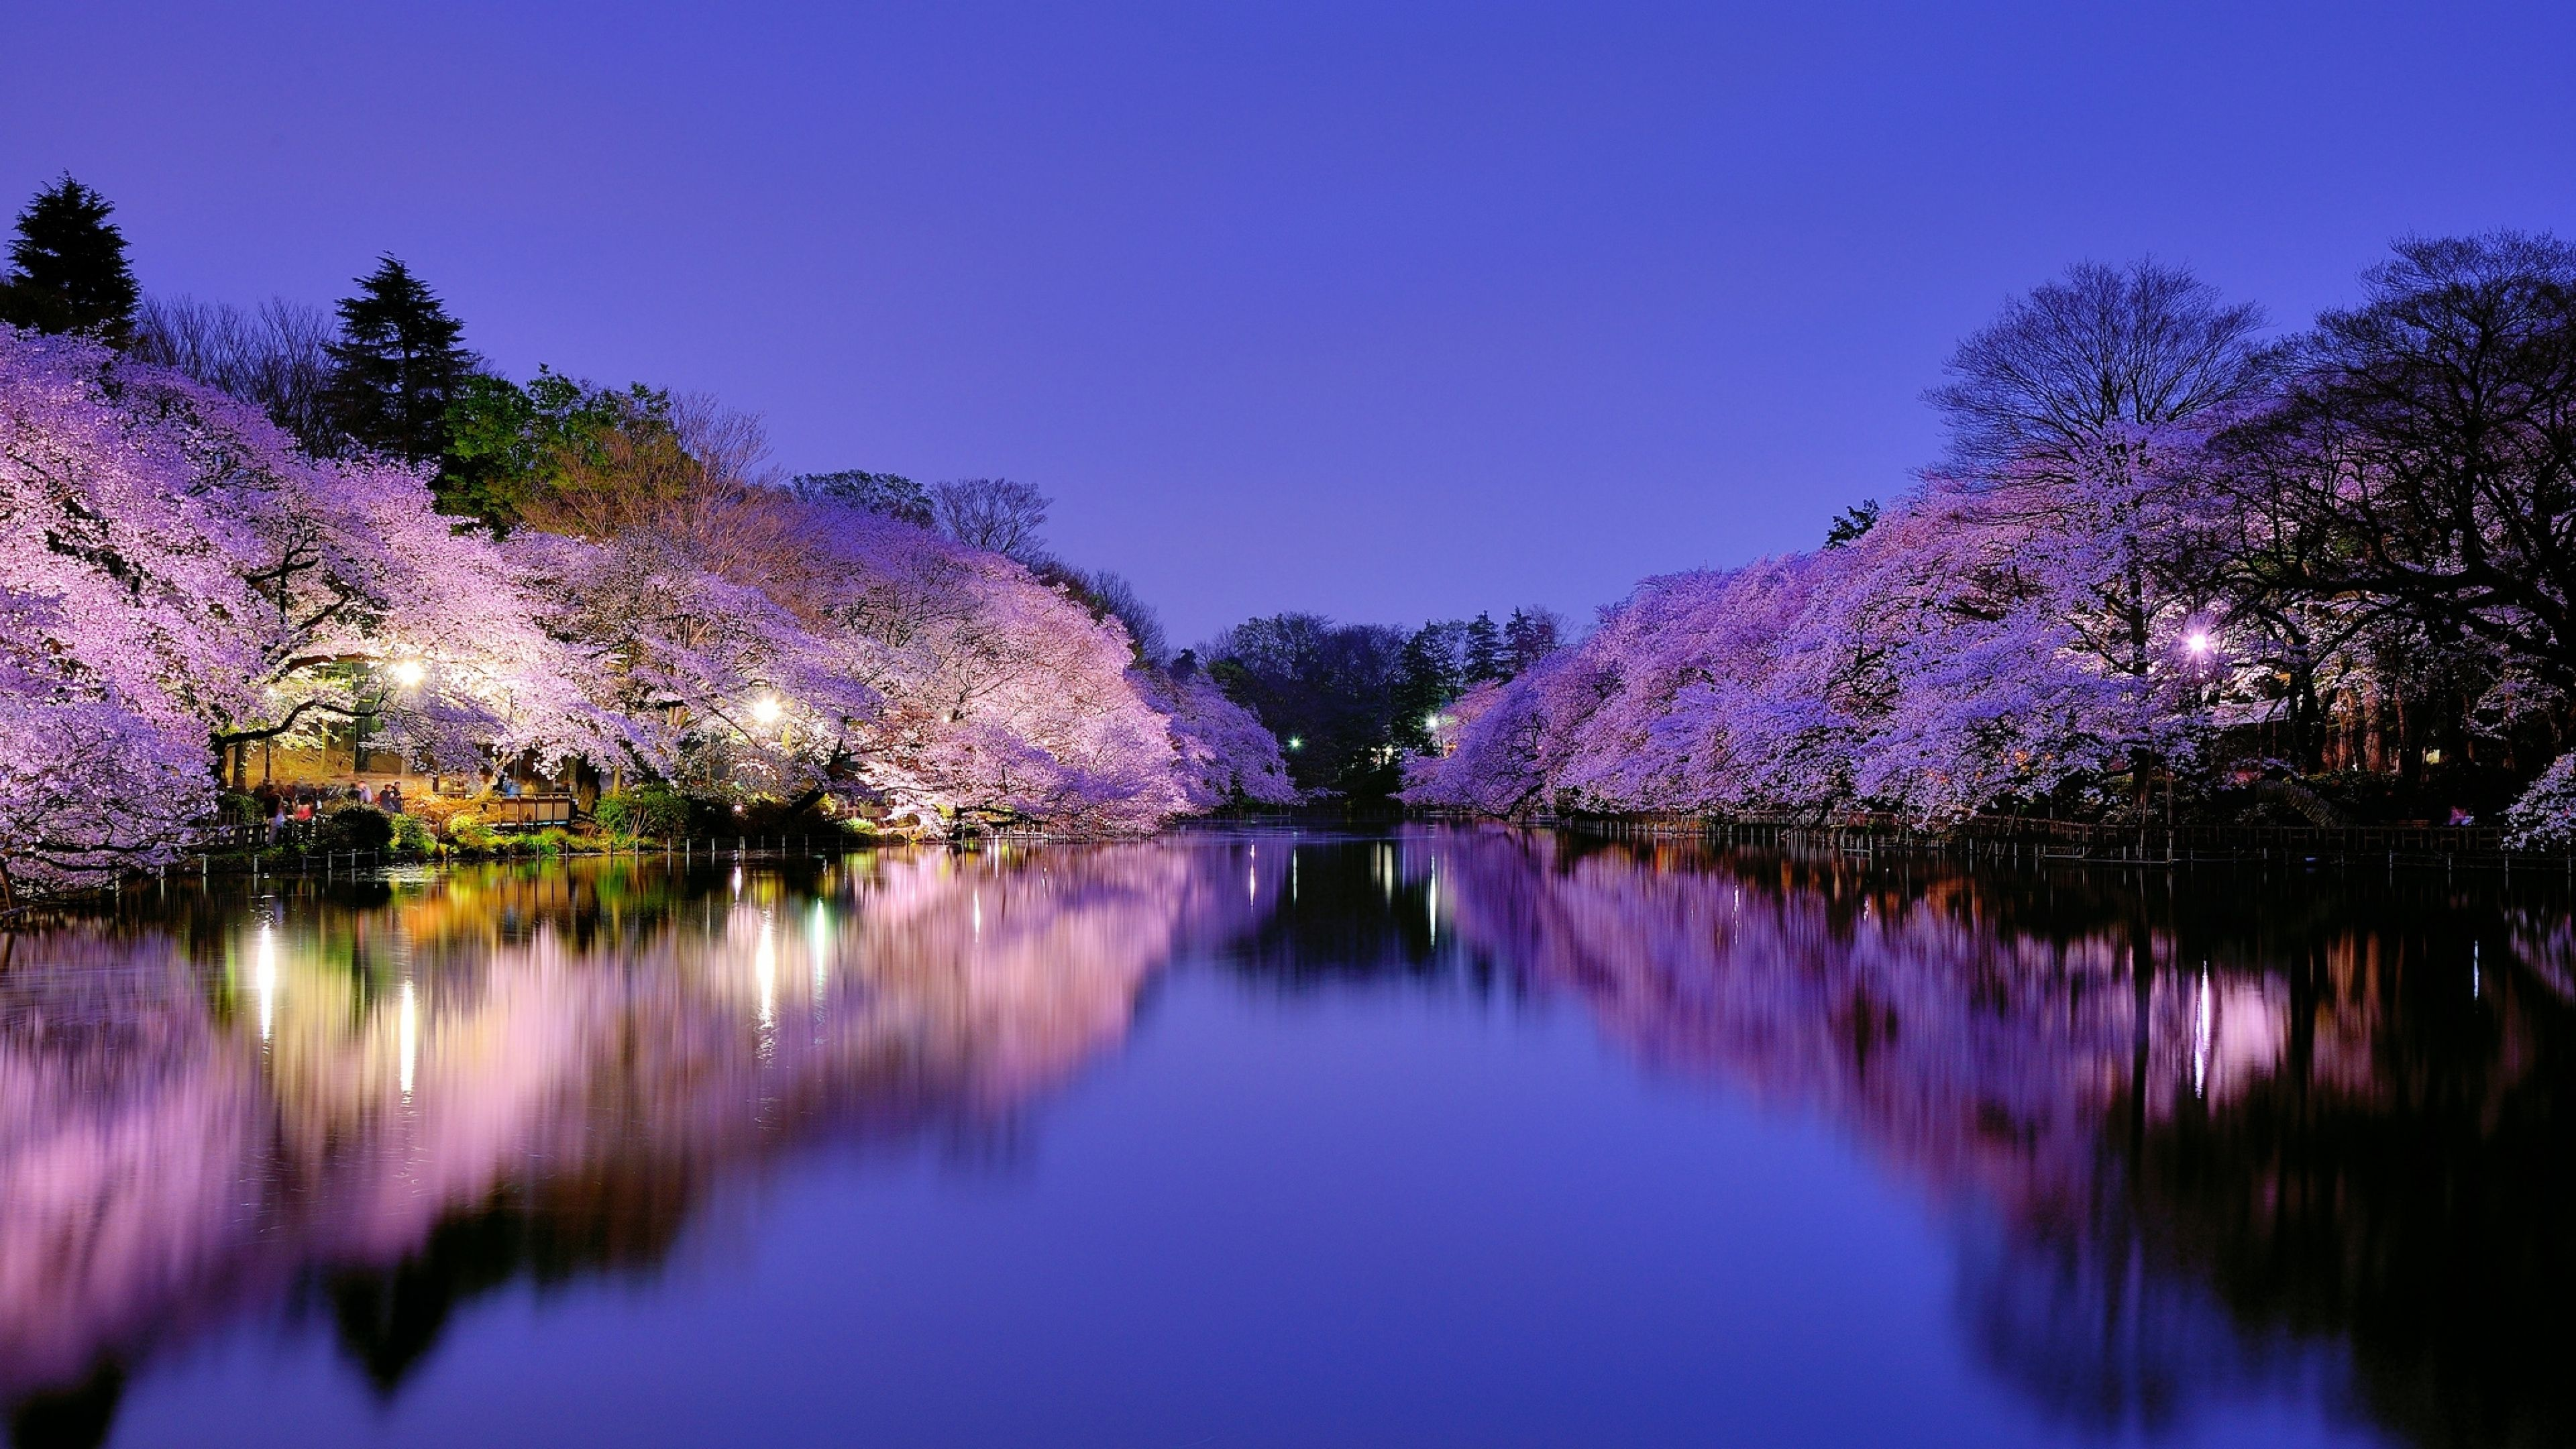 Japan 4K Ultra HD Wallpapers - Top Free Japan 4K Ultra HD